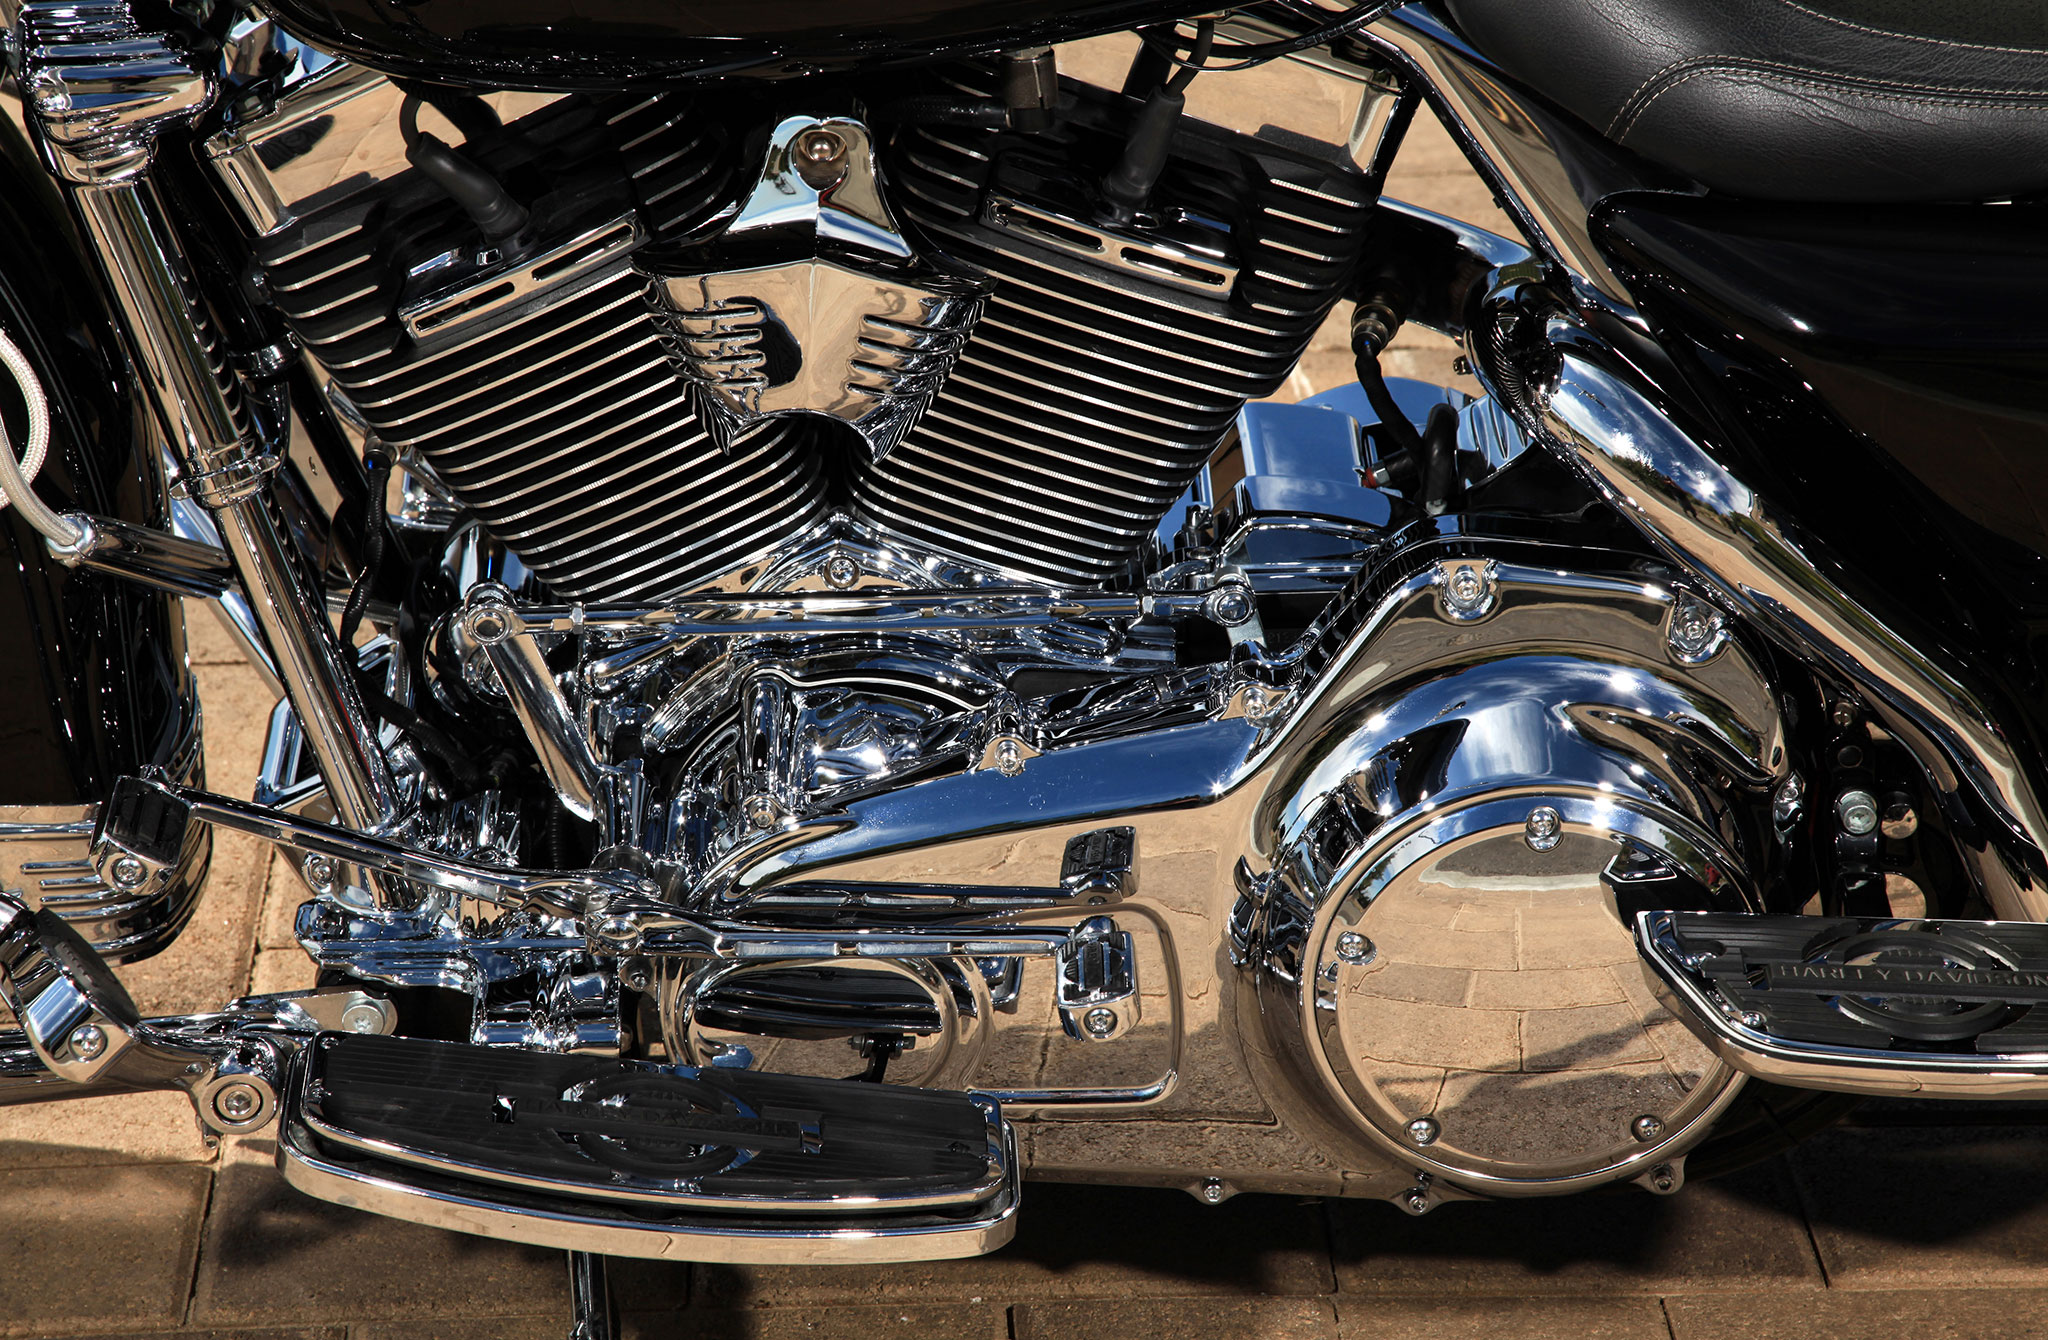 2008 Harley Davidson Road King Classic Wicked Hd